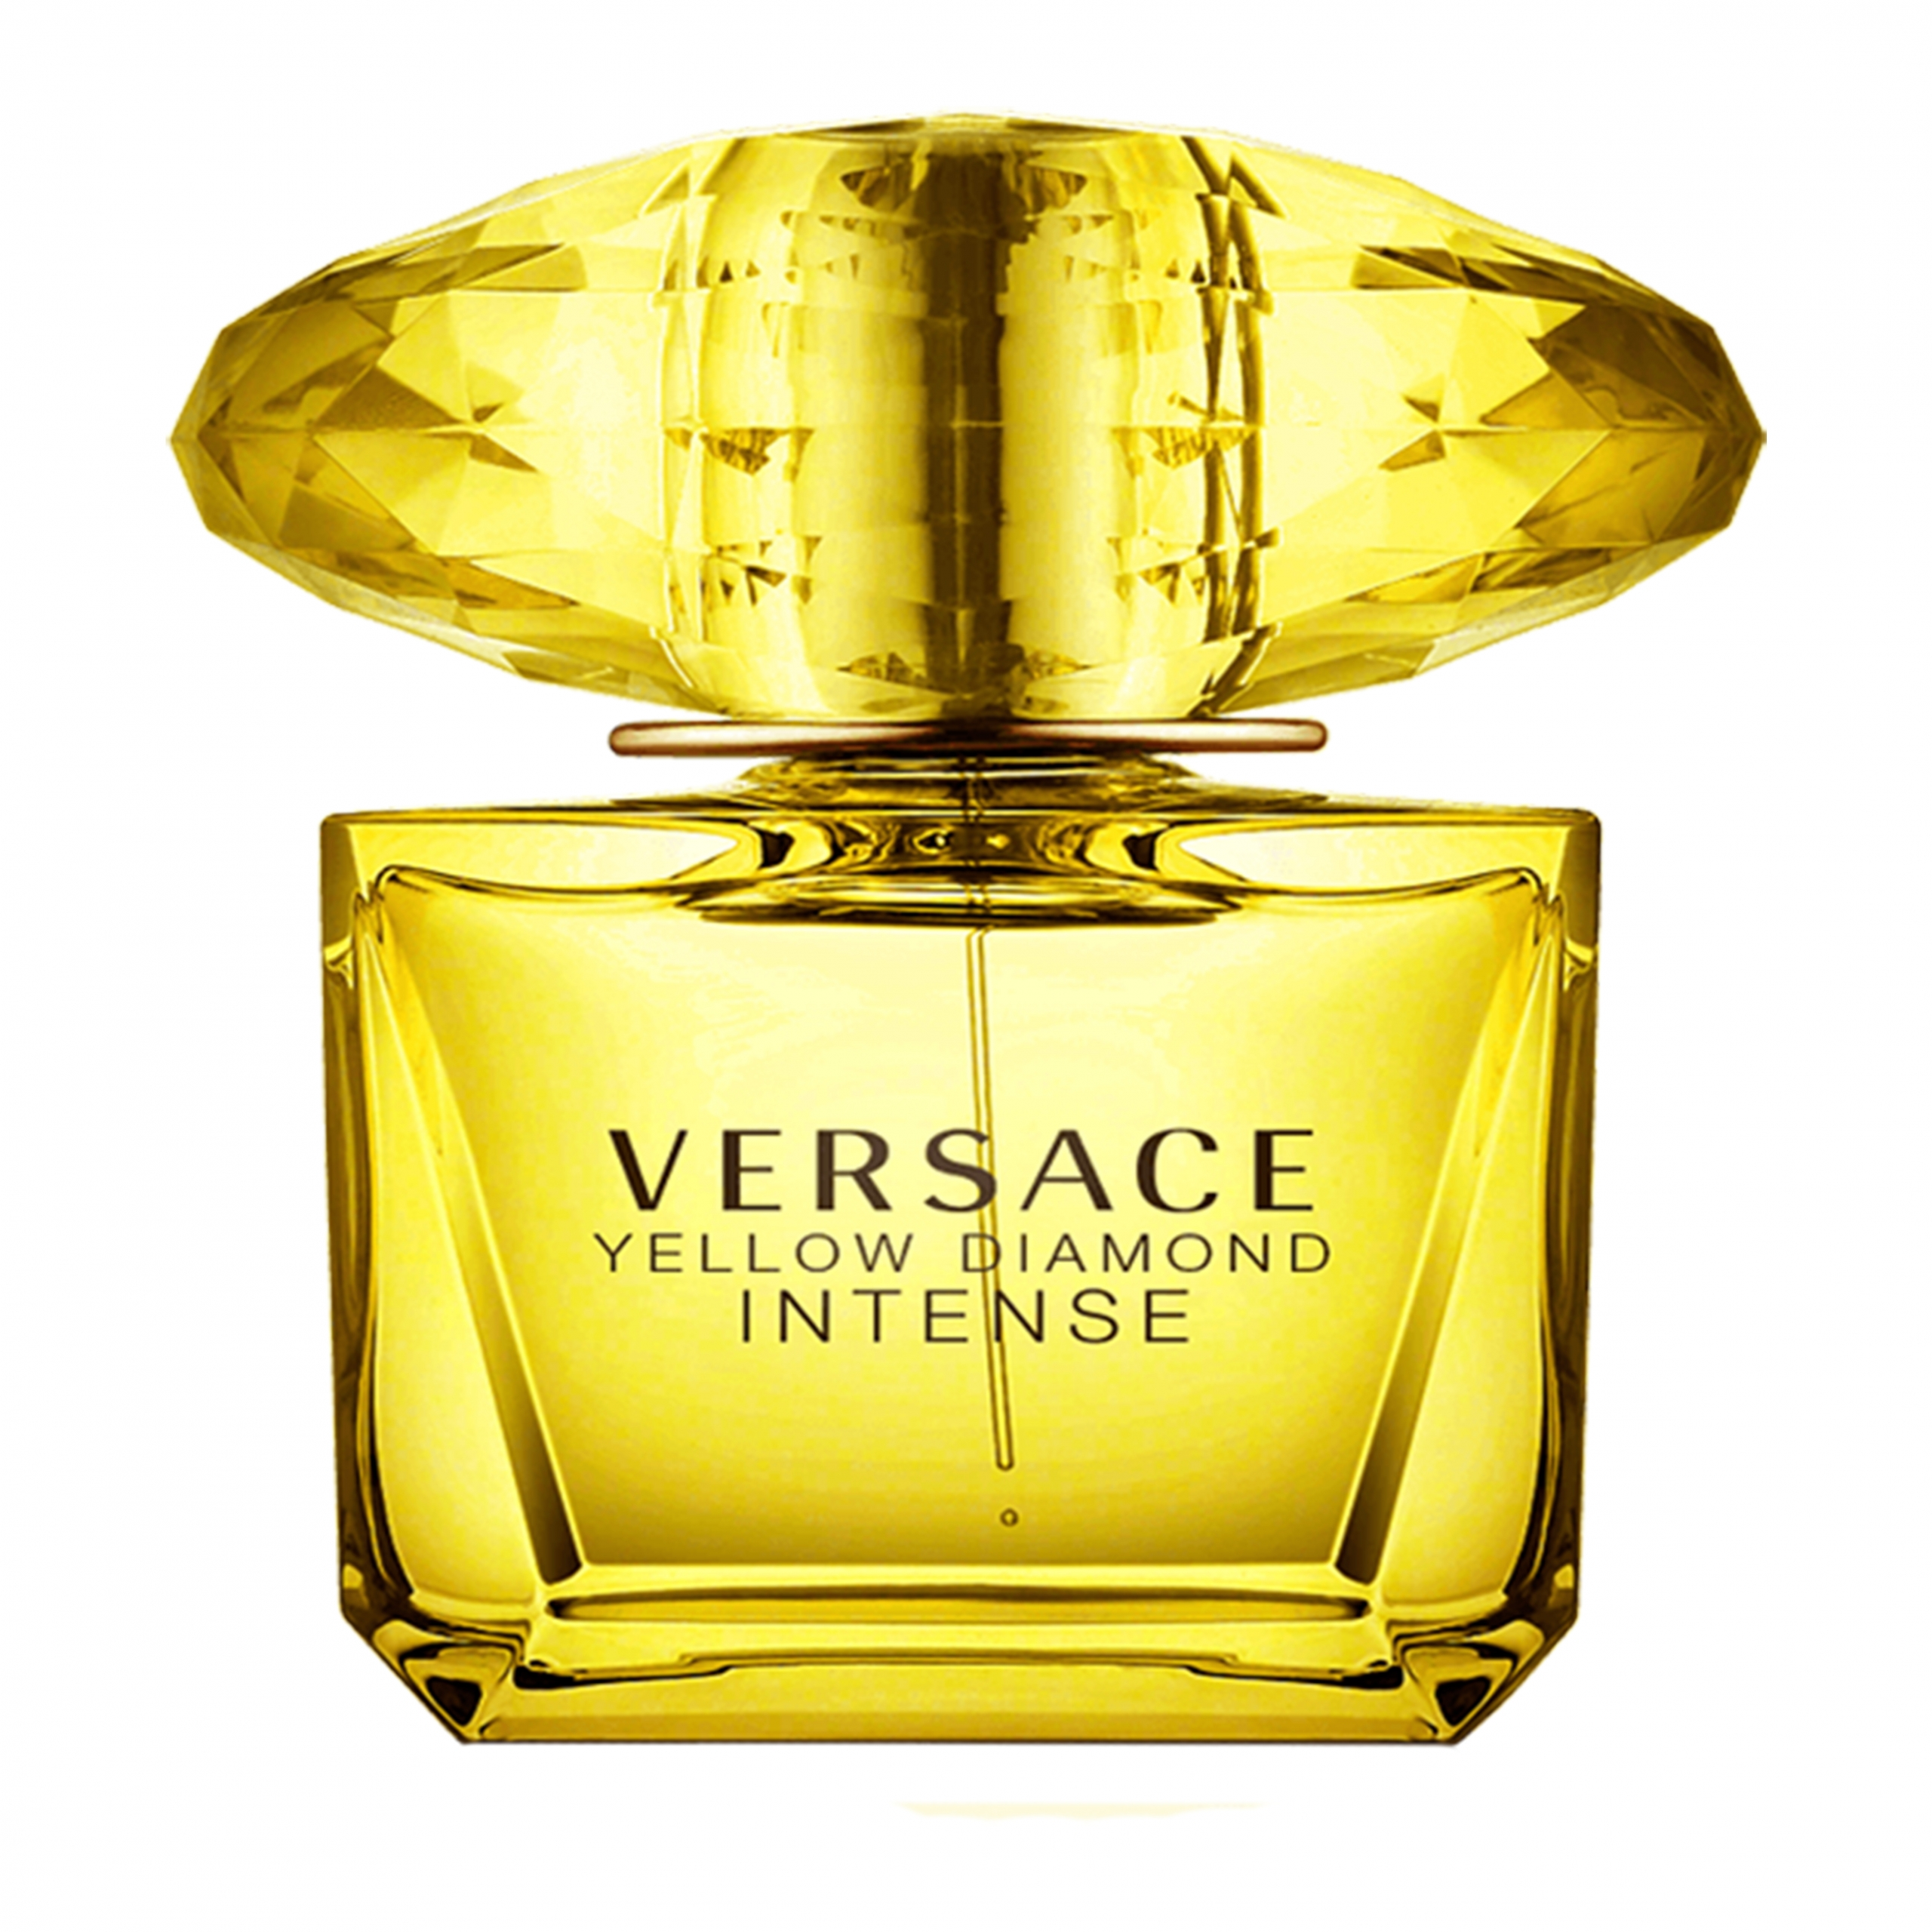 VERSACE - YELLOW DIAMOND INTENSE EDP 90 ML